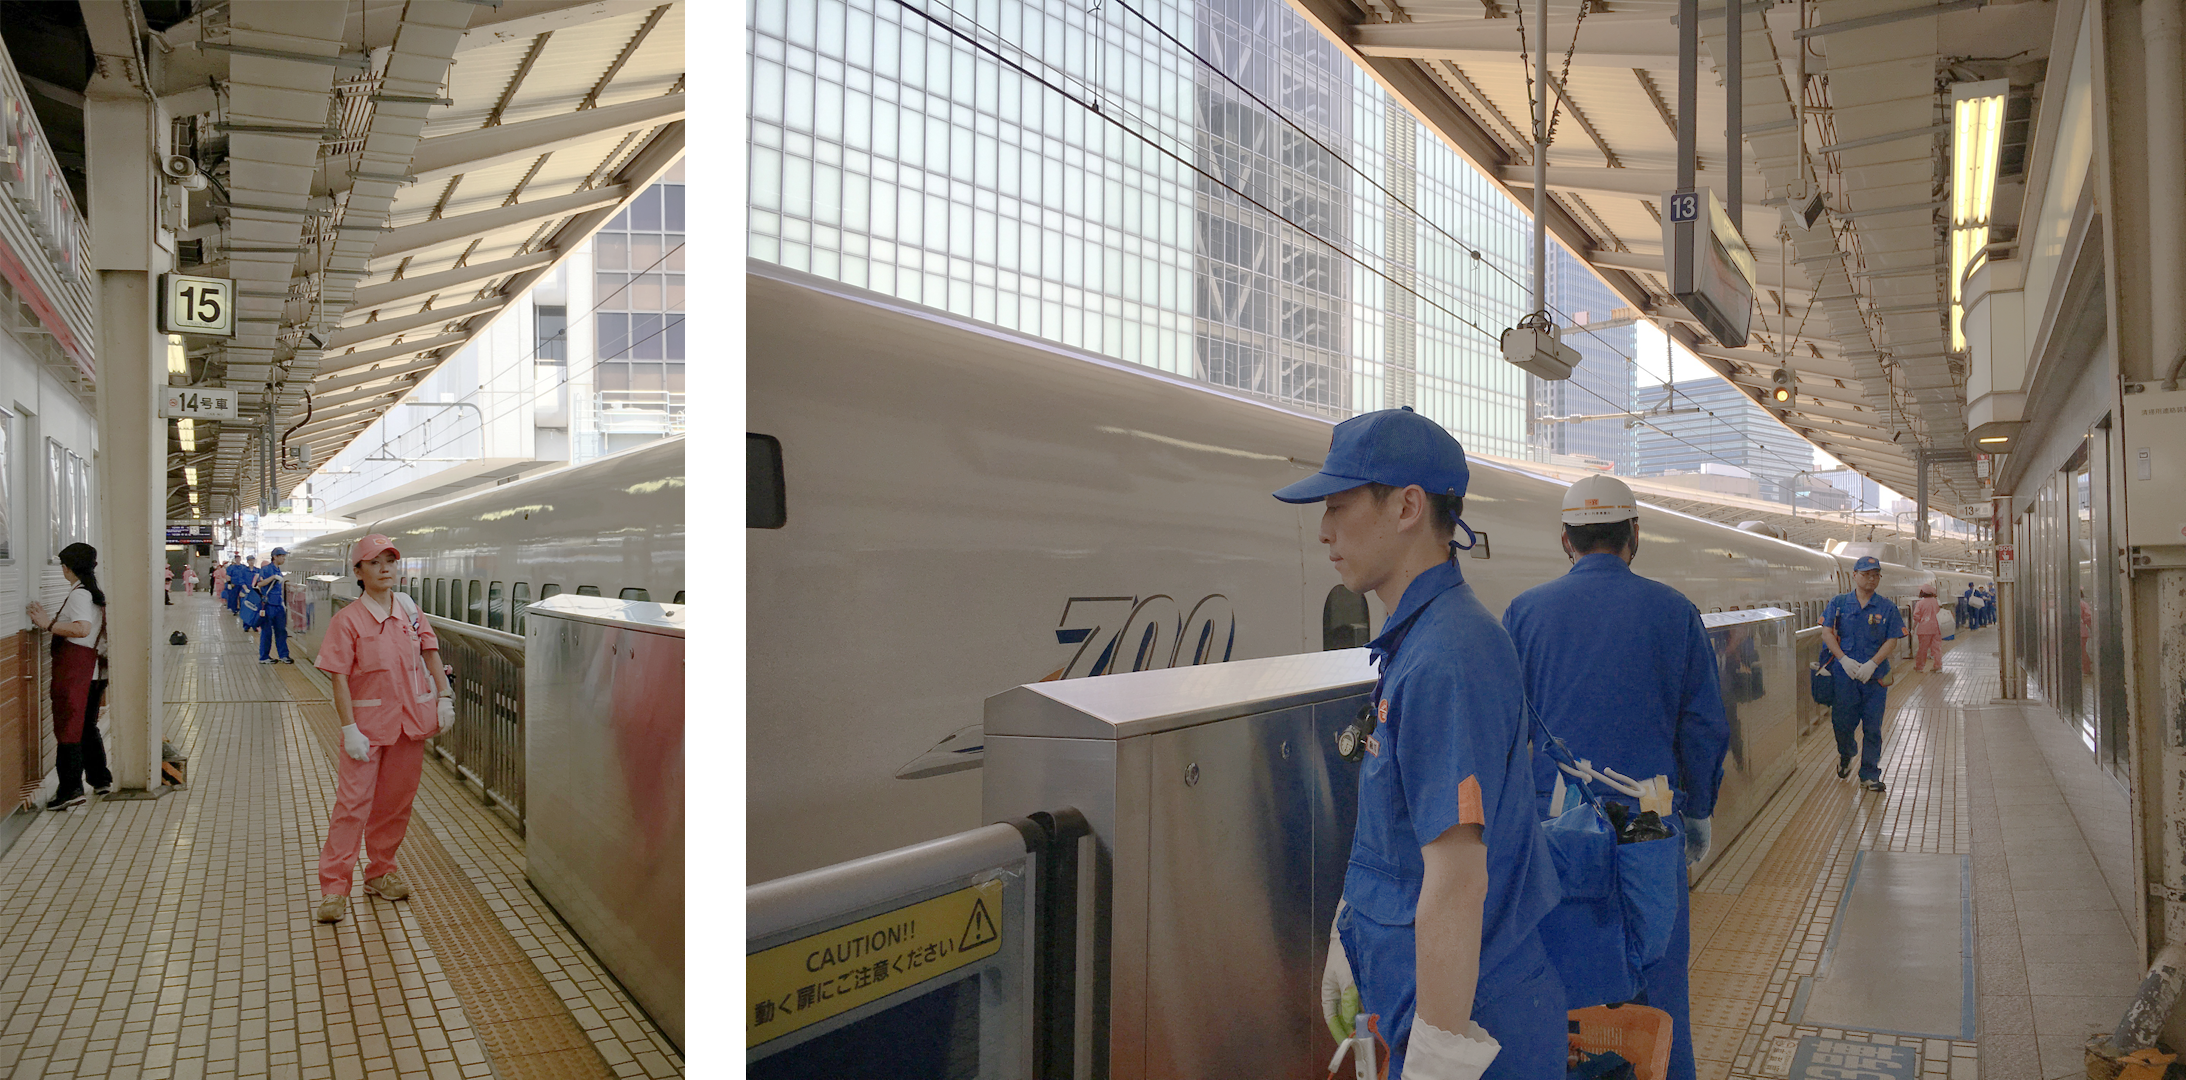 The Shinkansen attendants getting ready to clean at bullet speed.